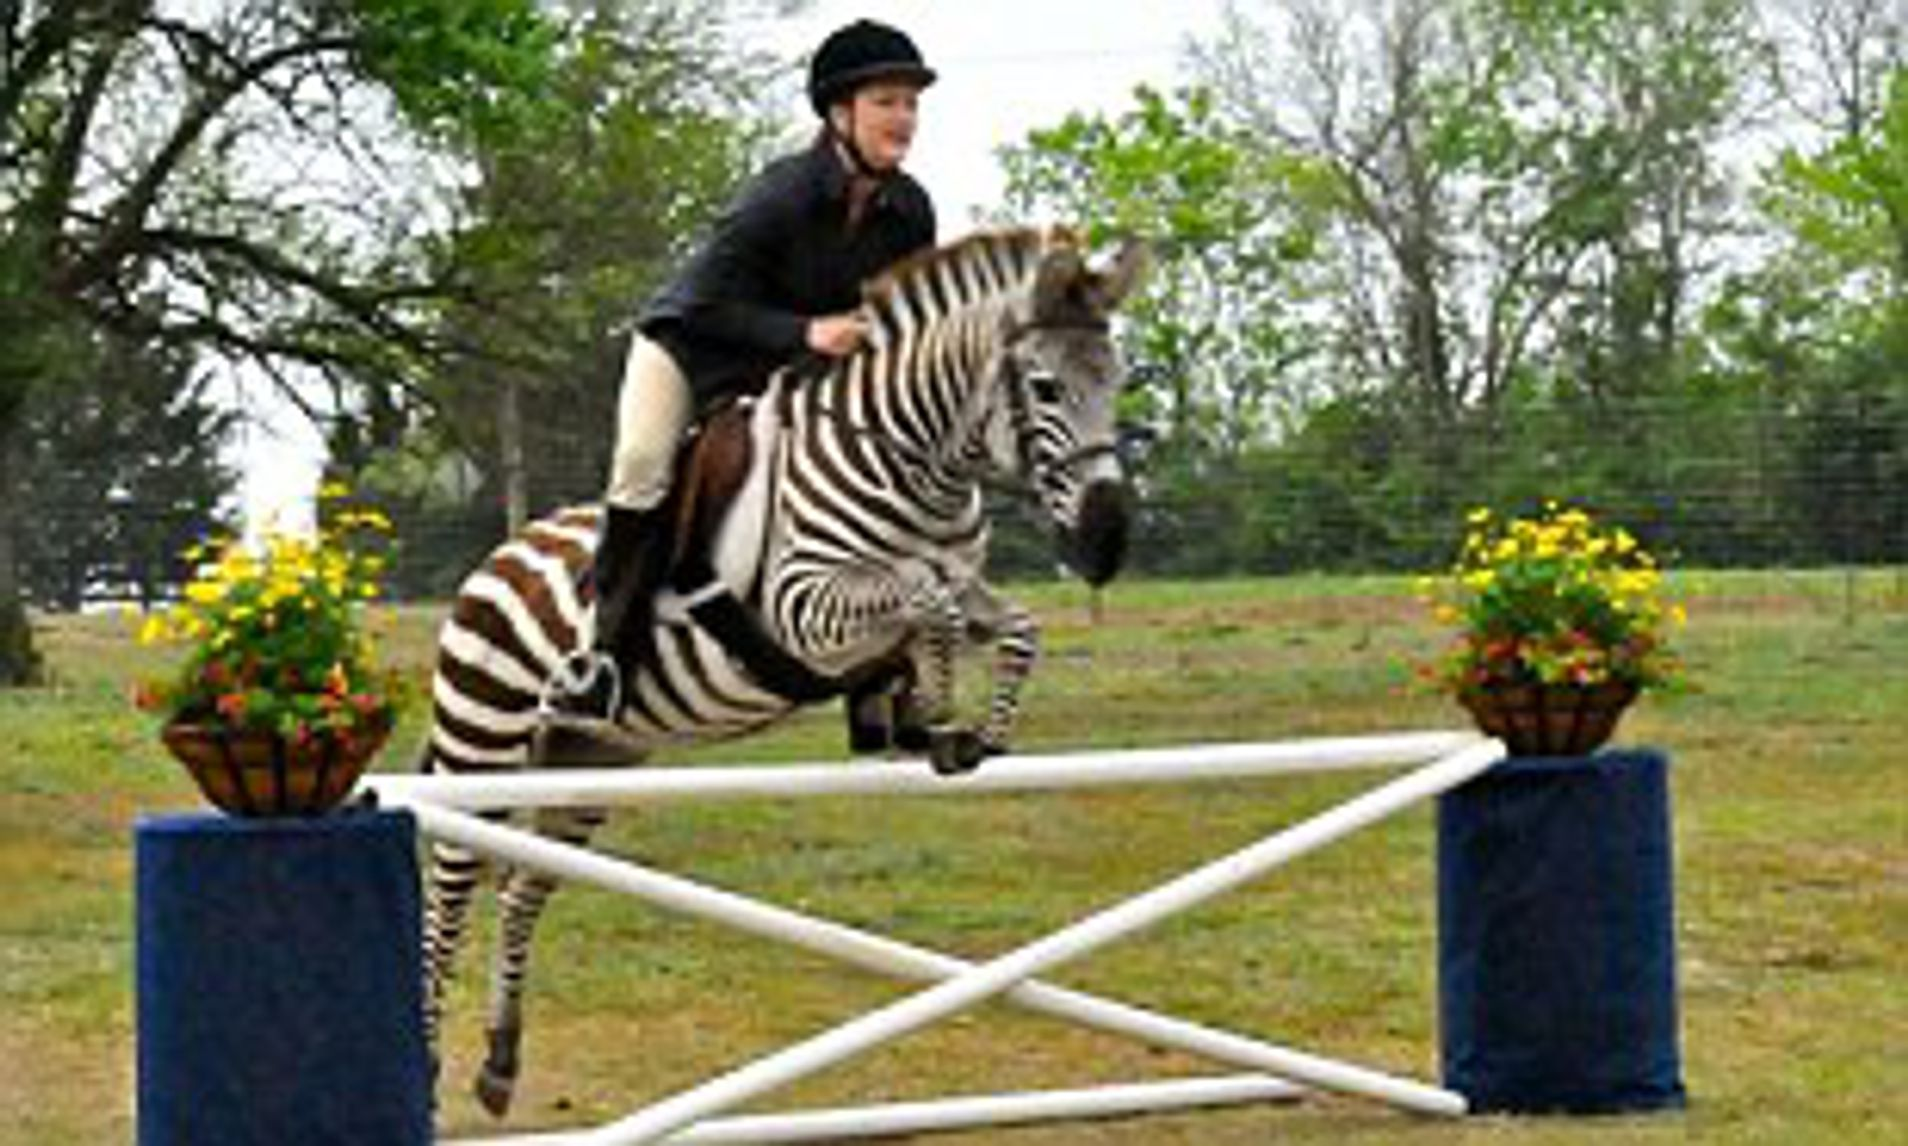 Zack The Jumping Zebra